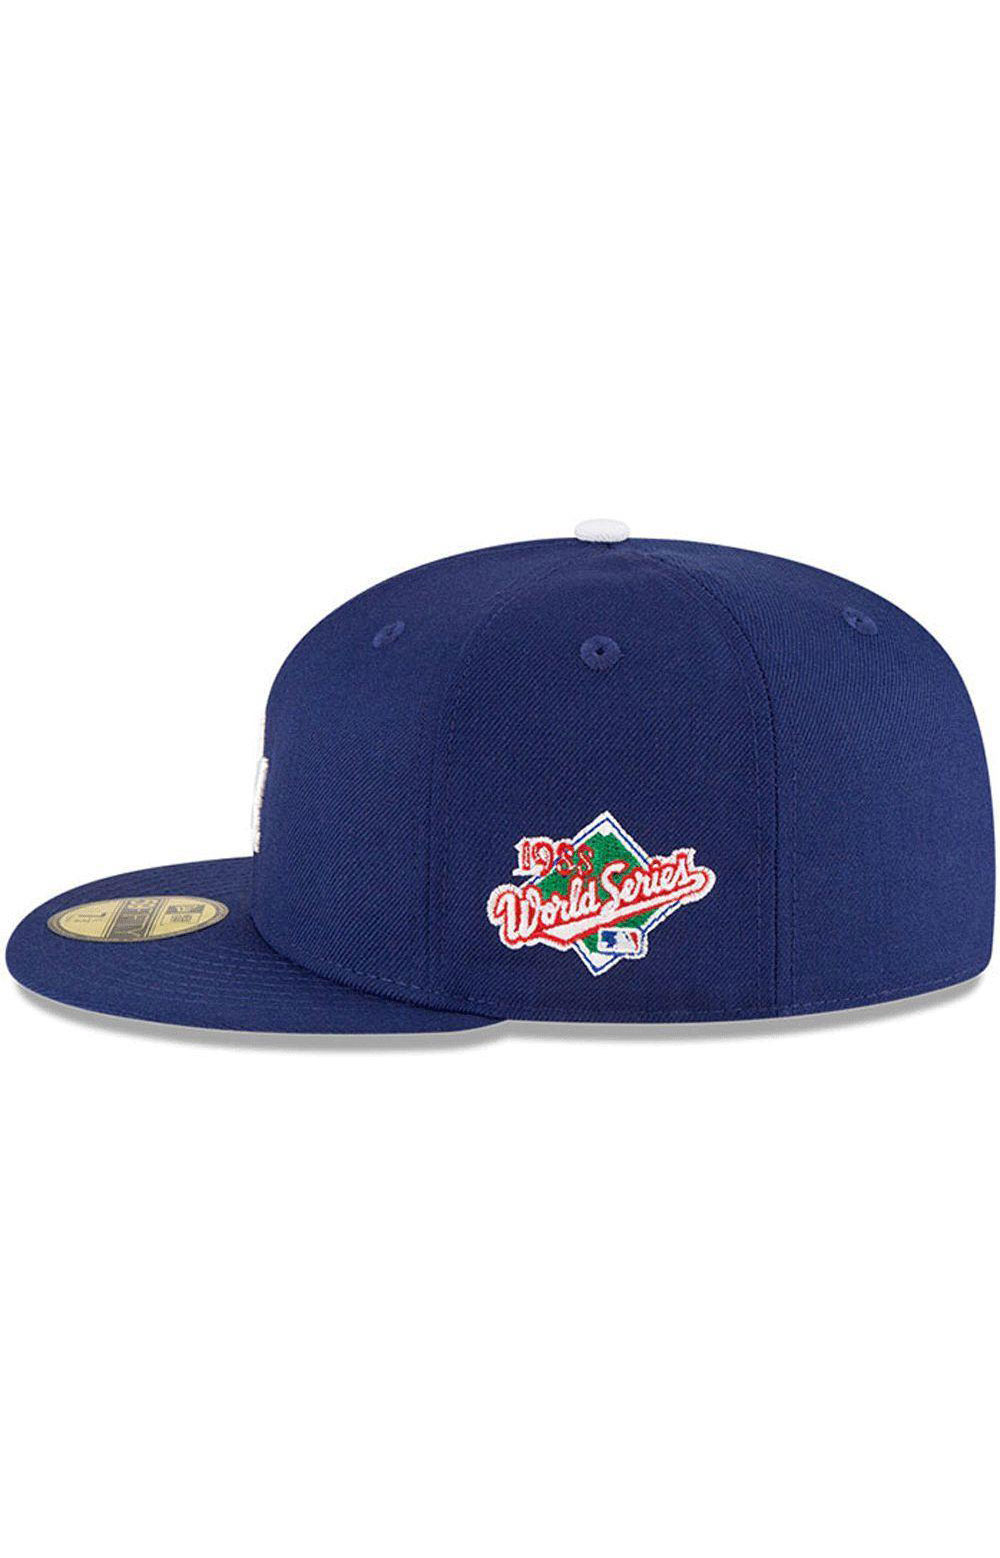 LA Dodgers 1988 World Series Wool 59Fifty Fitted Hat - Royal Blue  2